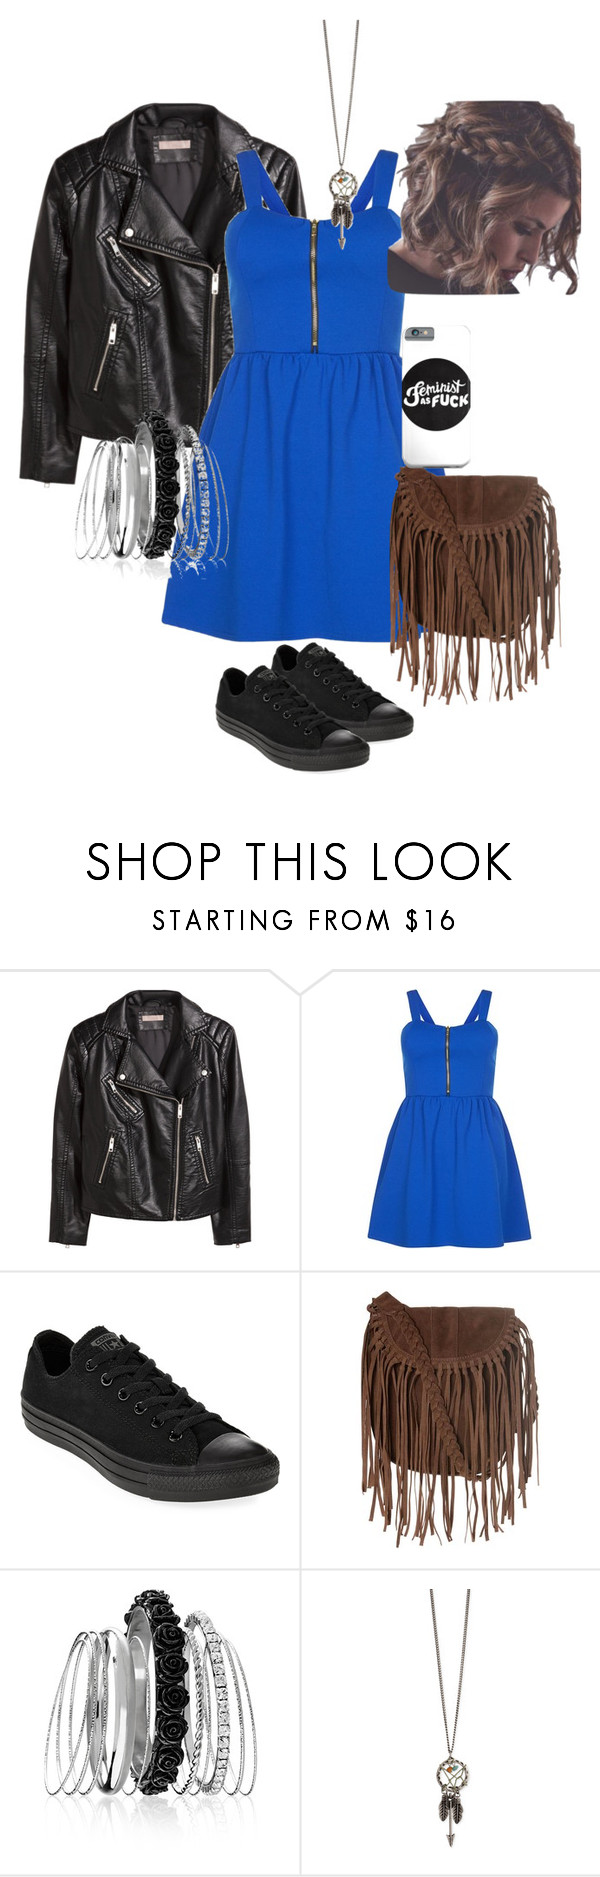 """""""One fave"""" by selenakellylolljee on Polyvore featuring H&M, Cameo Rose, Converse, Glamorous and Avenue"""